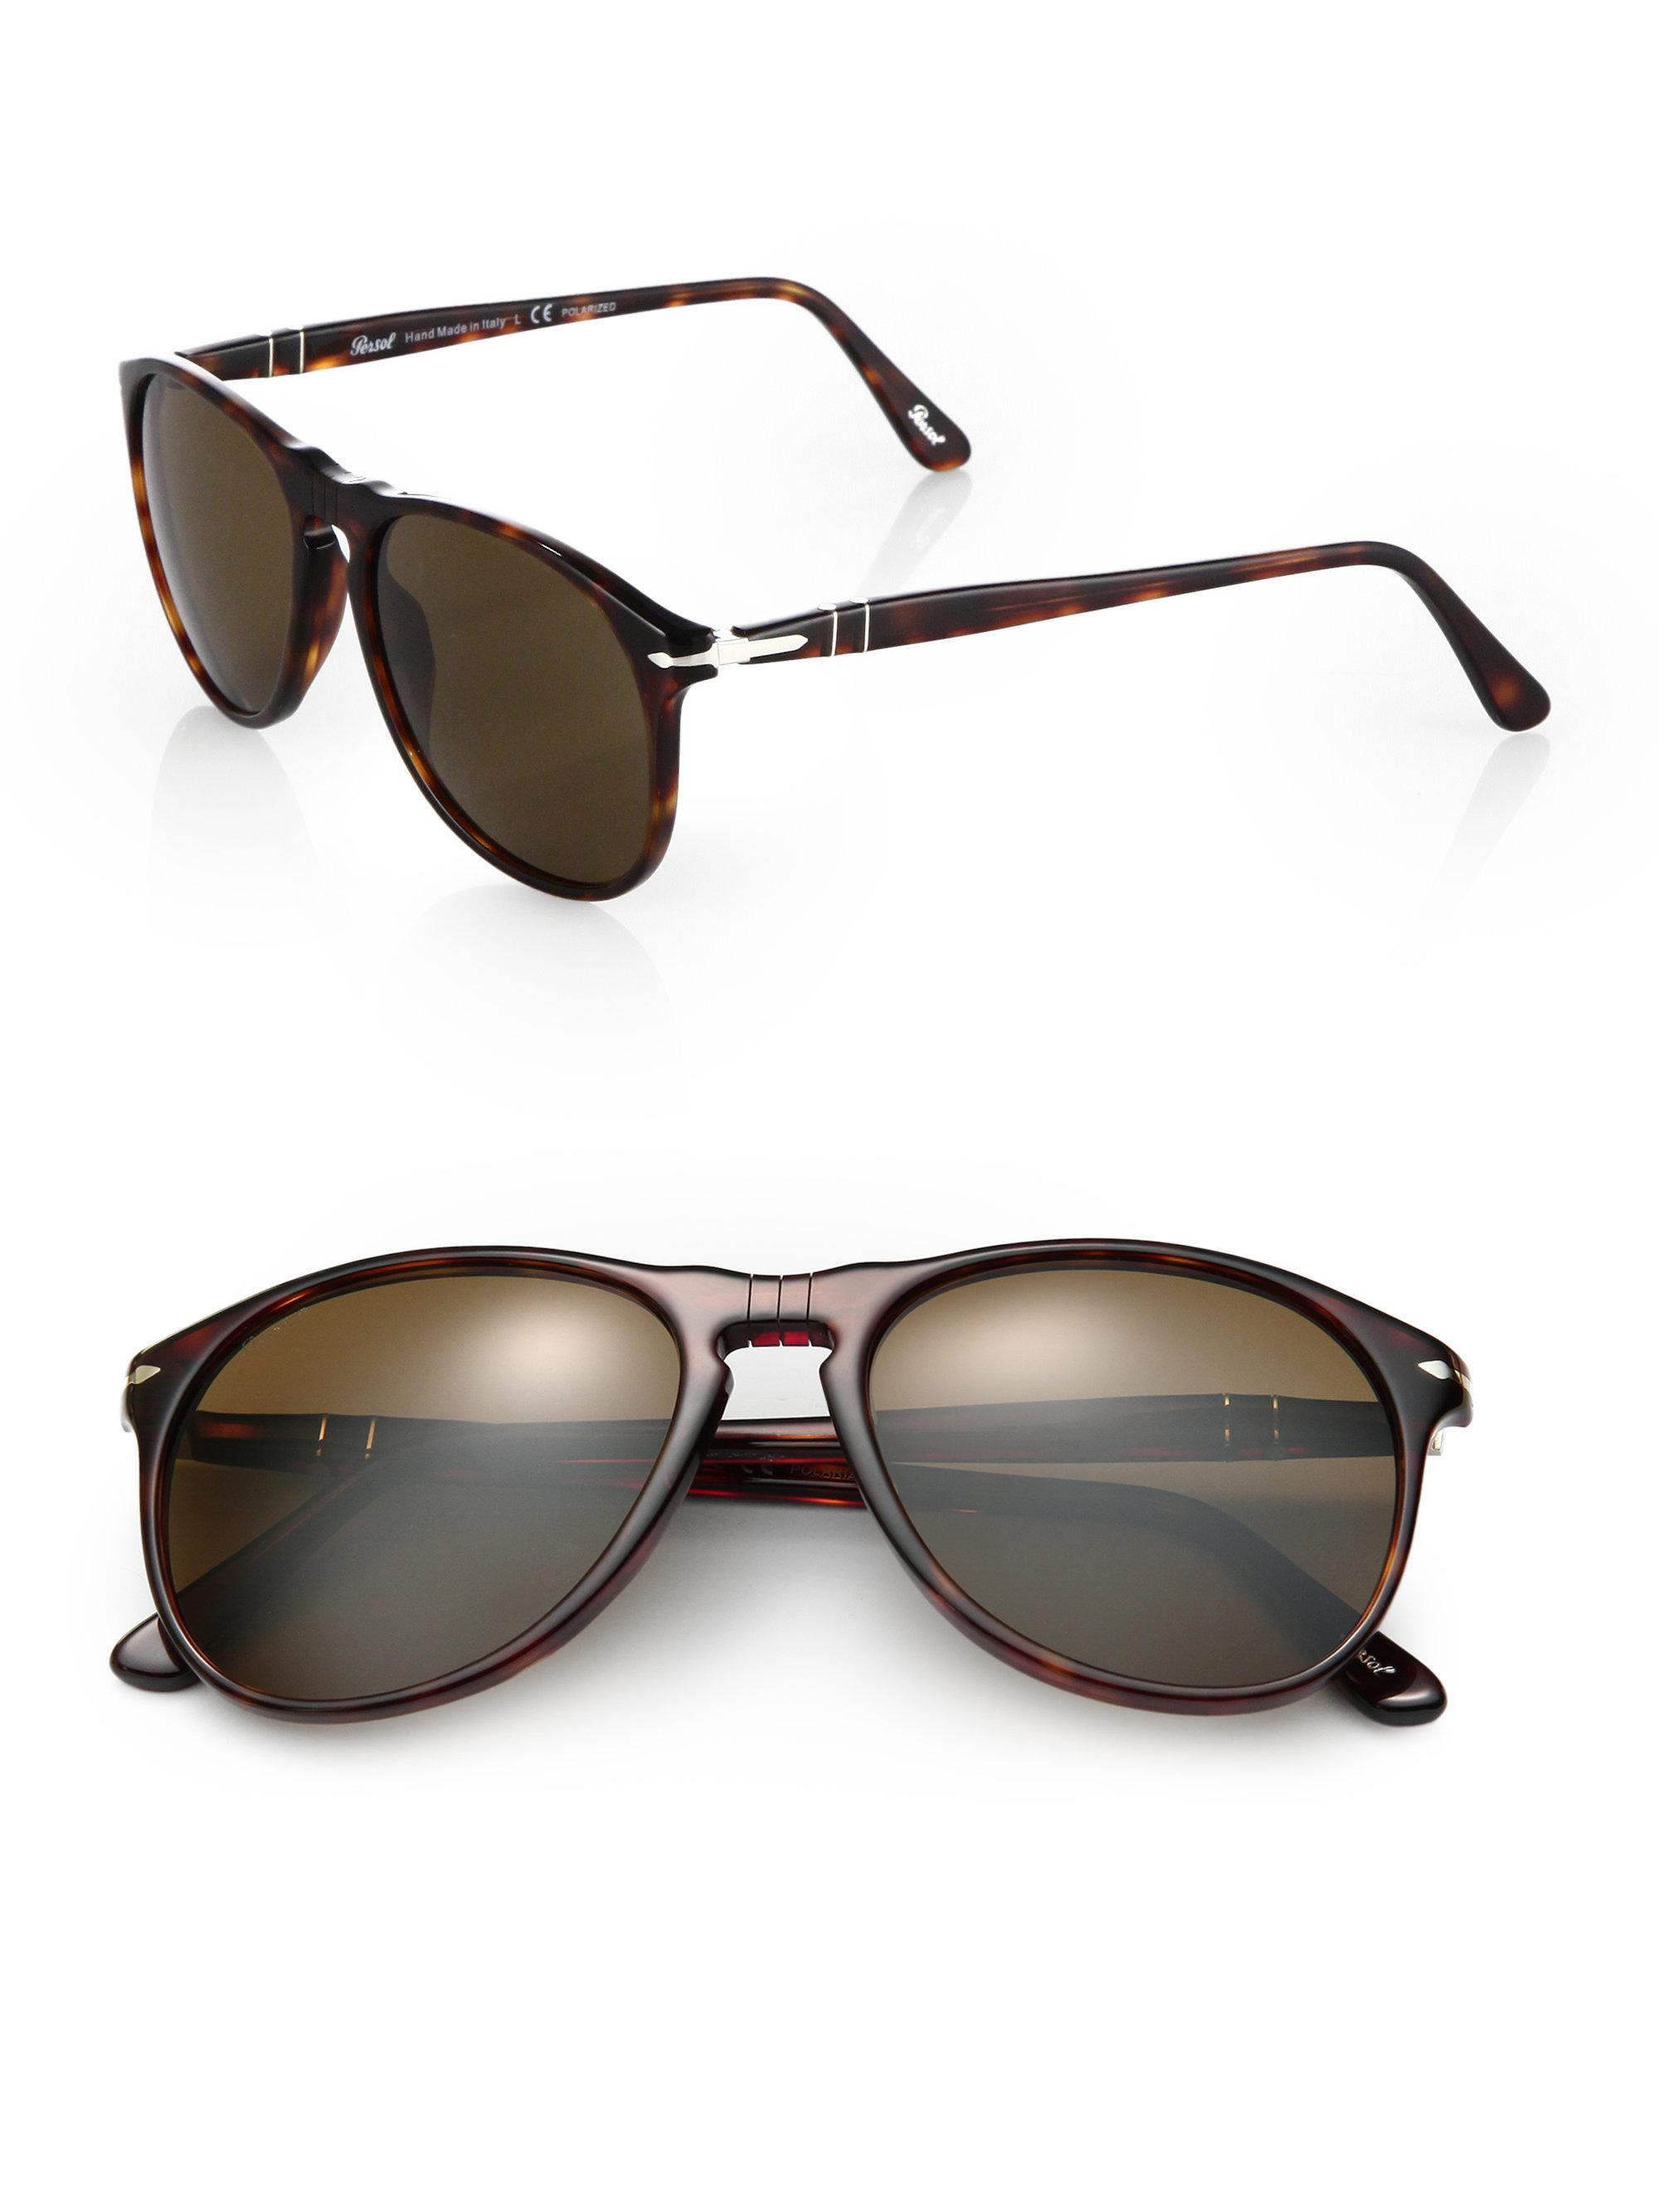 d445a25cdc421 Lyst - Persol 55mm Suprema Round Sunglasses in Brown for Men